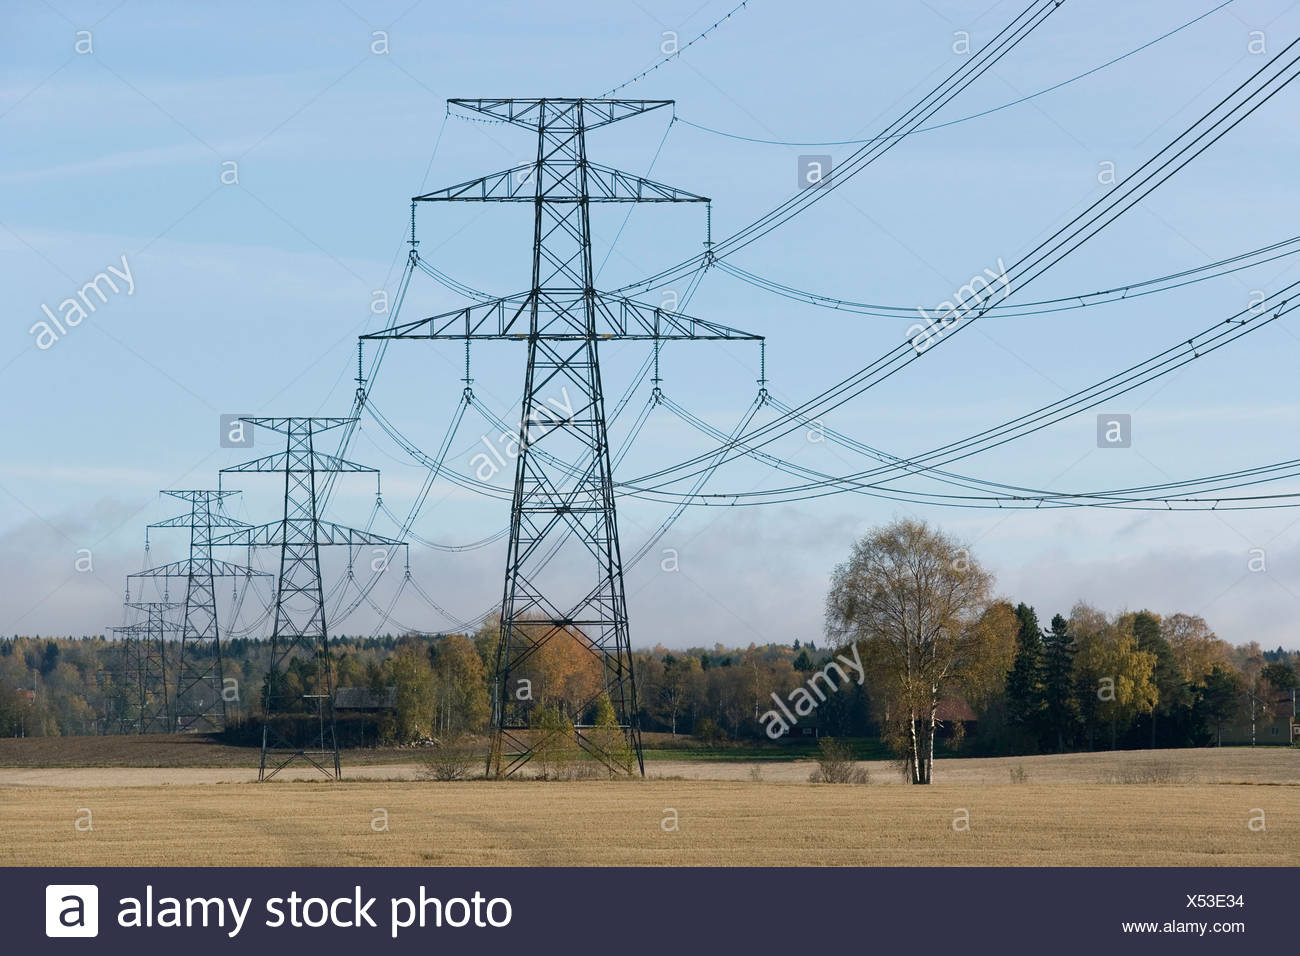 Low angle view of power lines on peaceful landscape against the sky - Stock Image